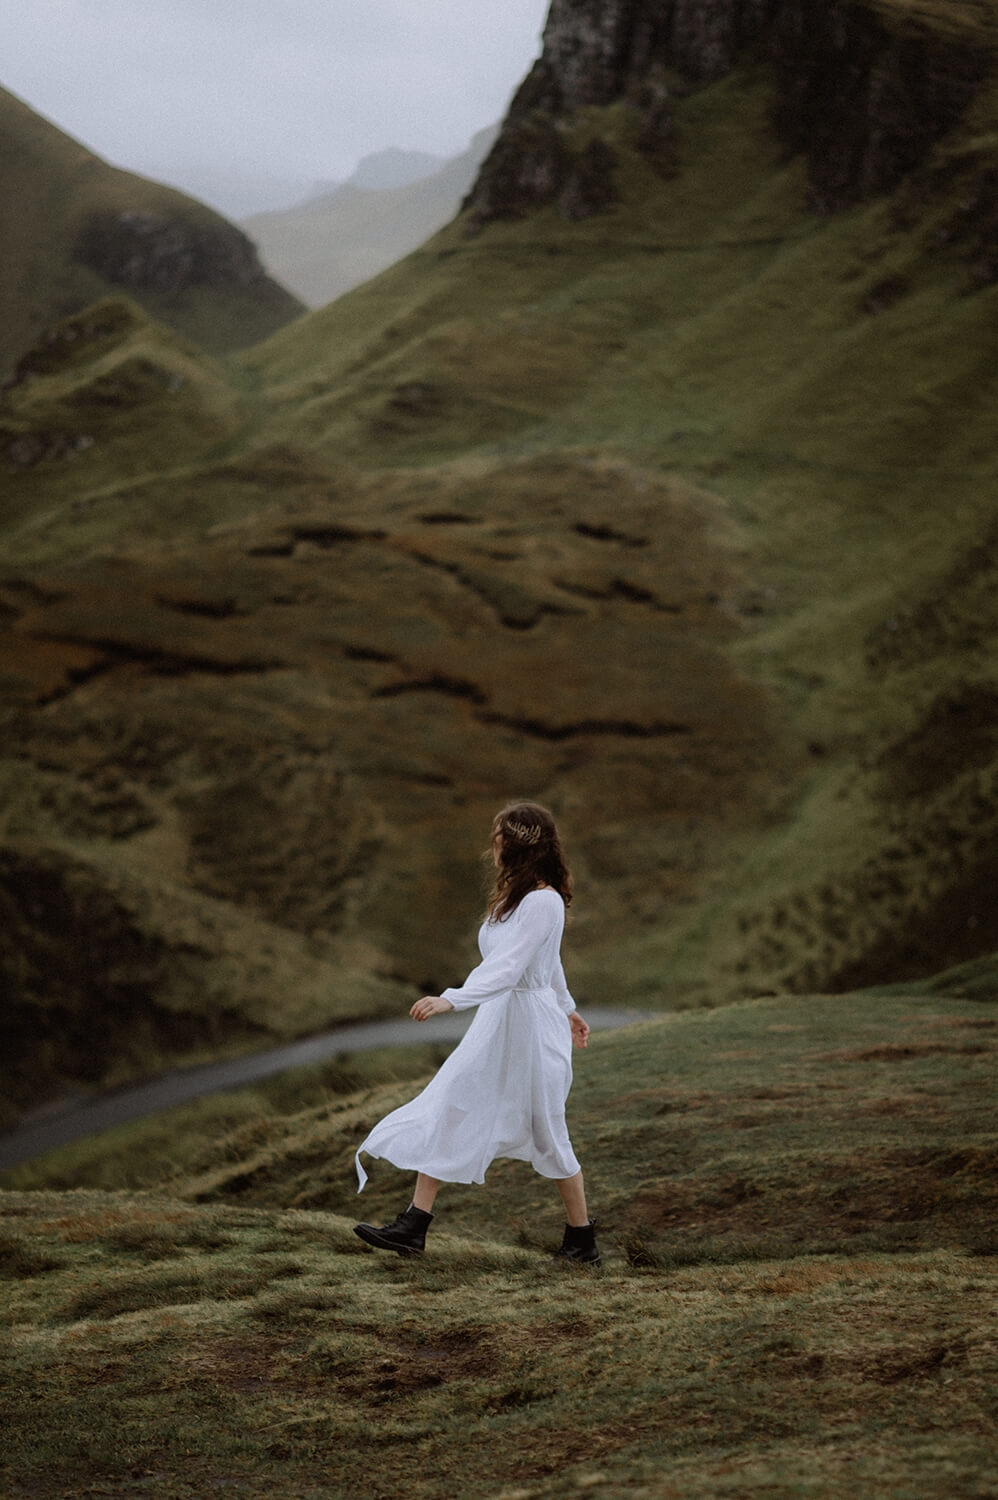 Walking through the Quiraing on the day of the elopement.